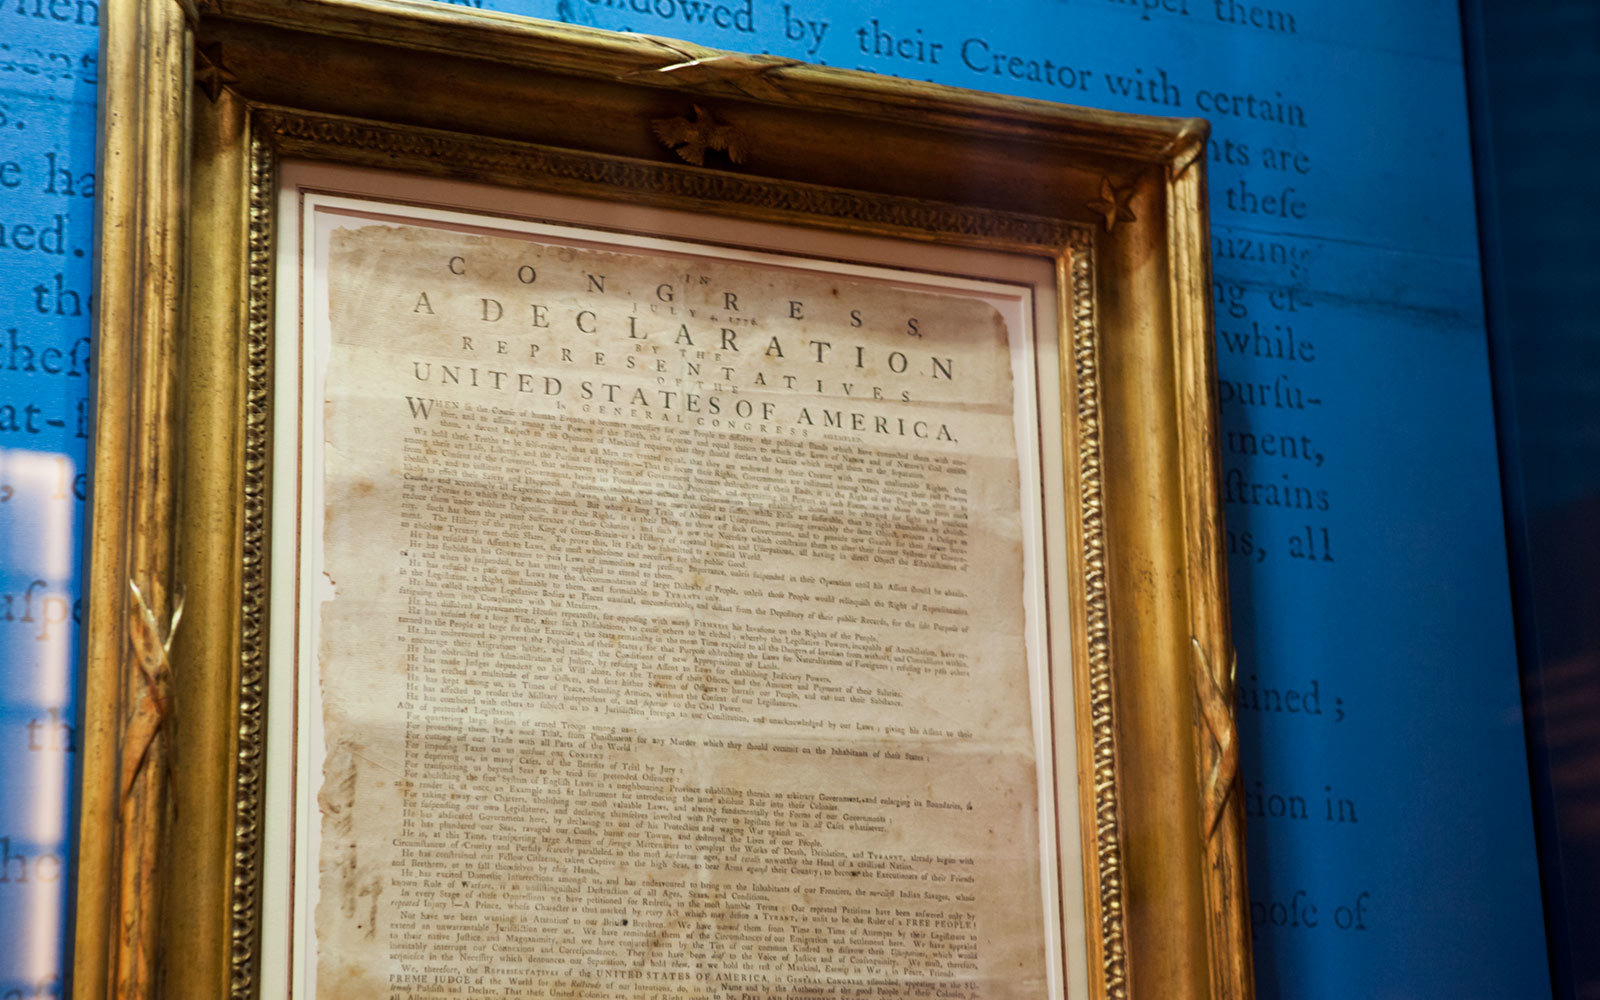 Declaration of Independence, Museum of the American Revolution, Philadelphia, Pennsylvania